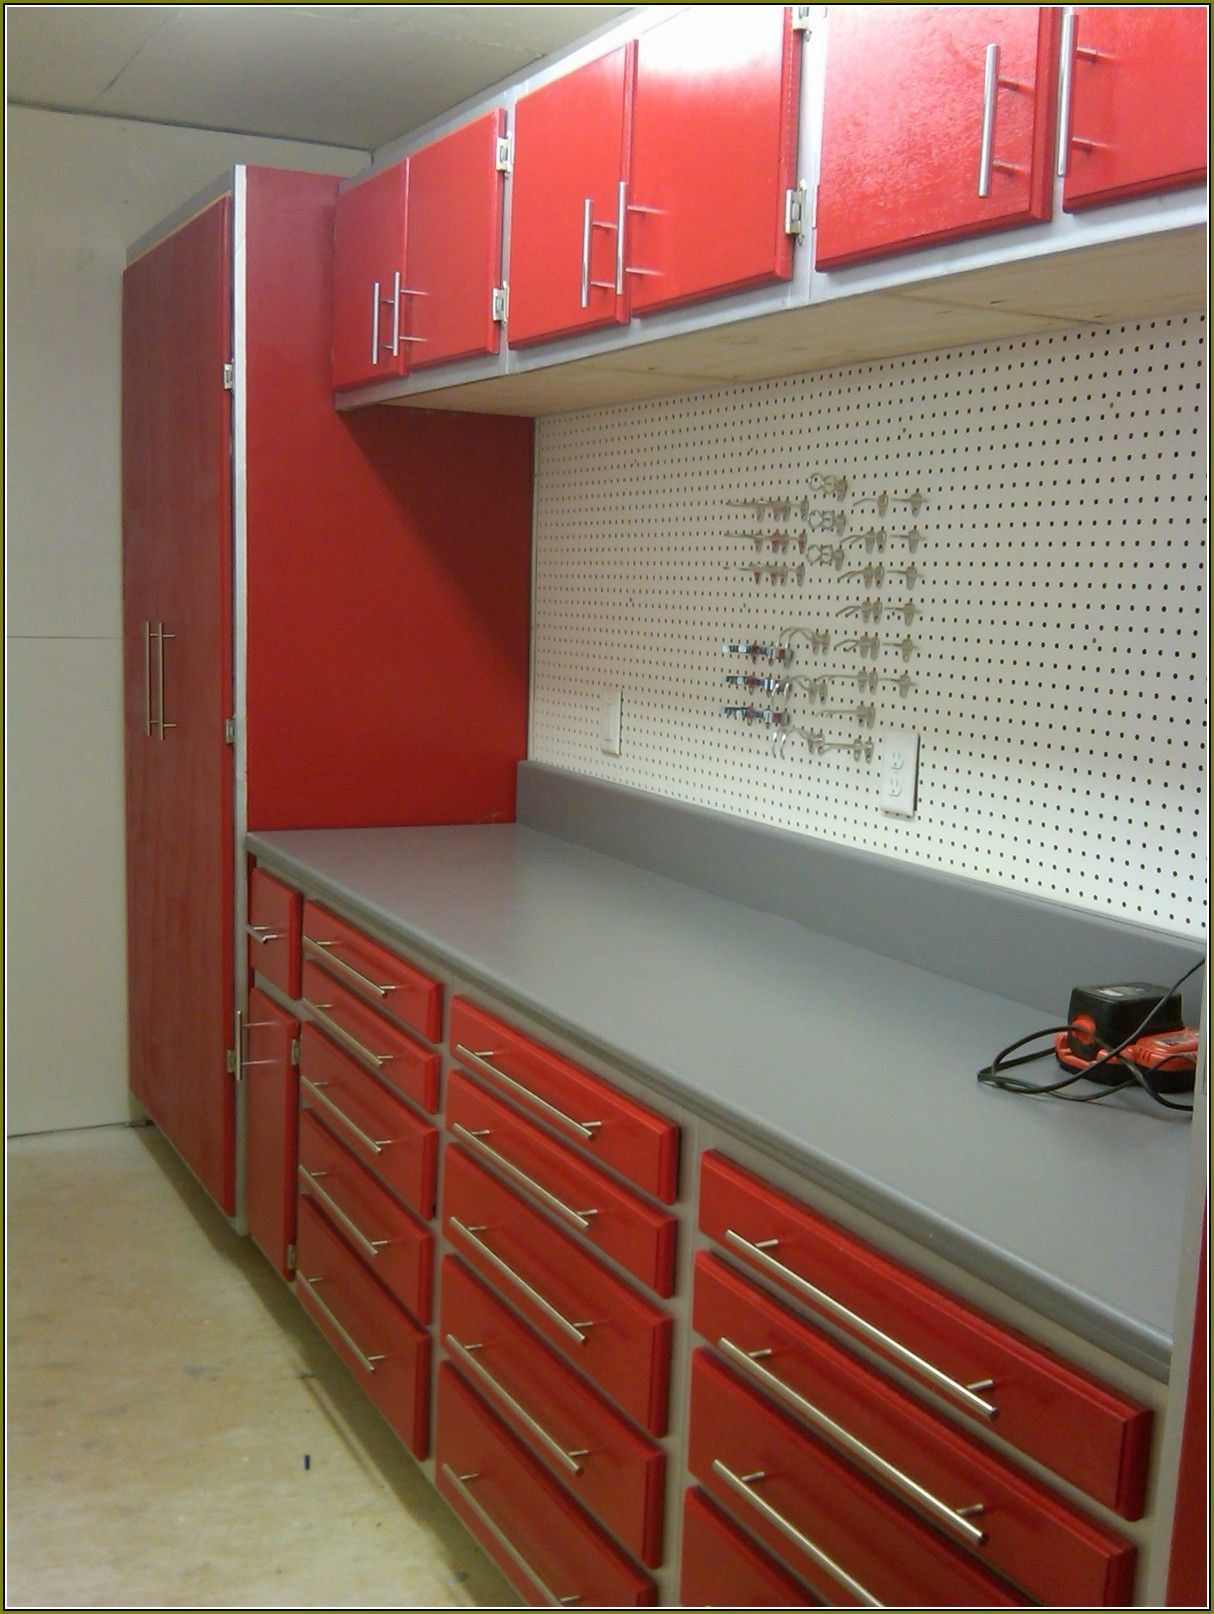 Garage Cabinet Plans Building Garage Cabinets With Kreg Jig Garage Storage Garage